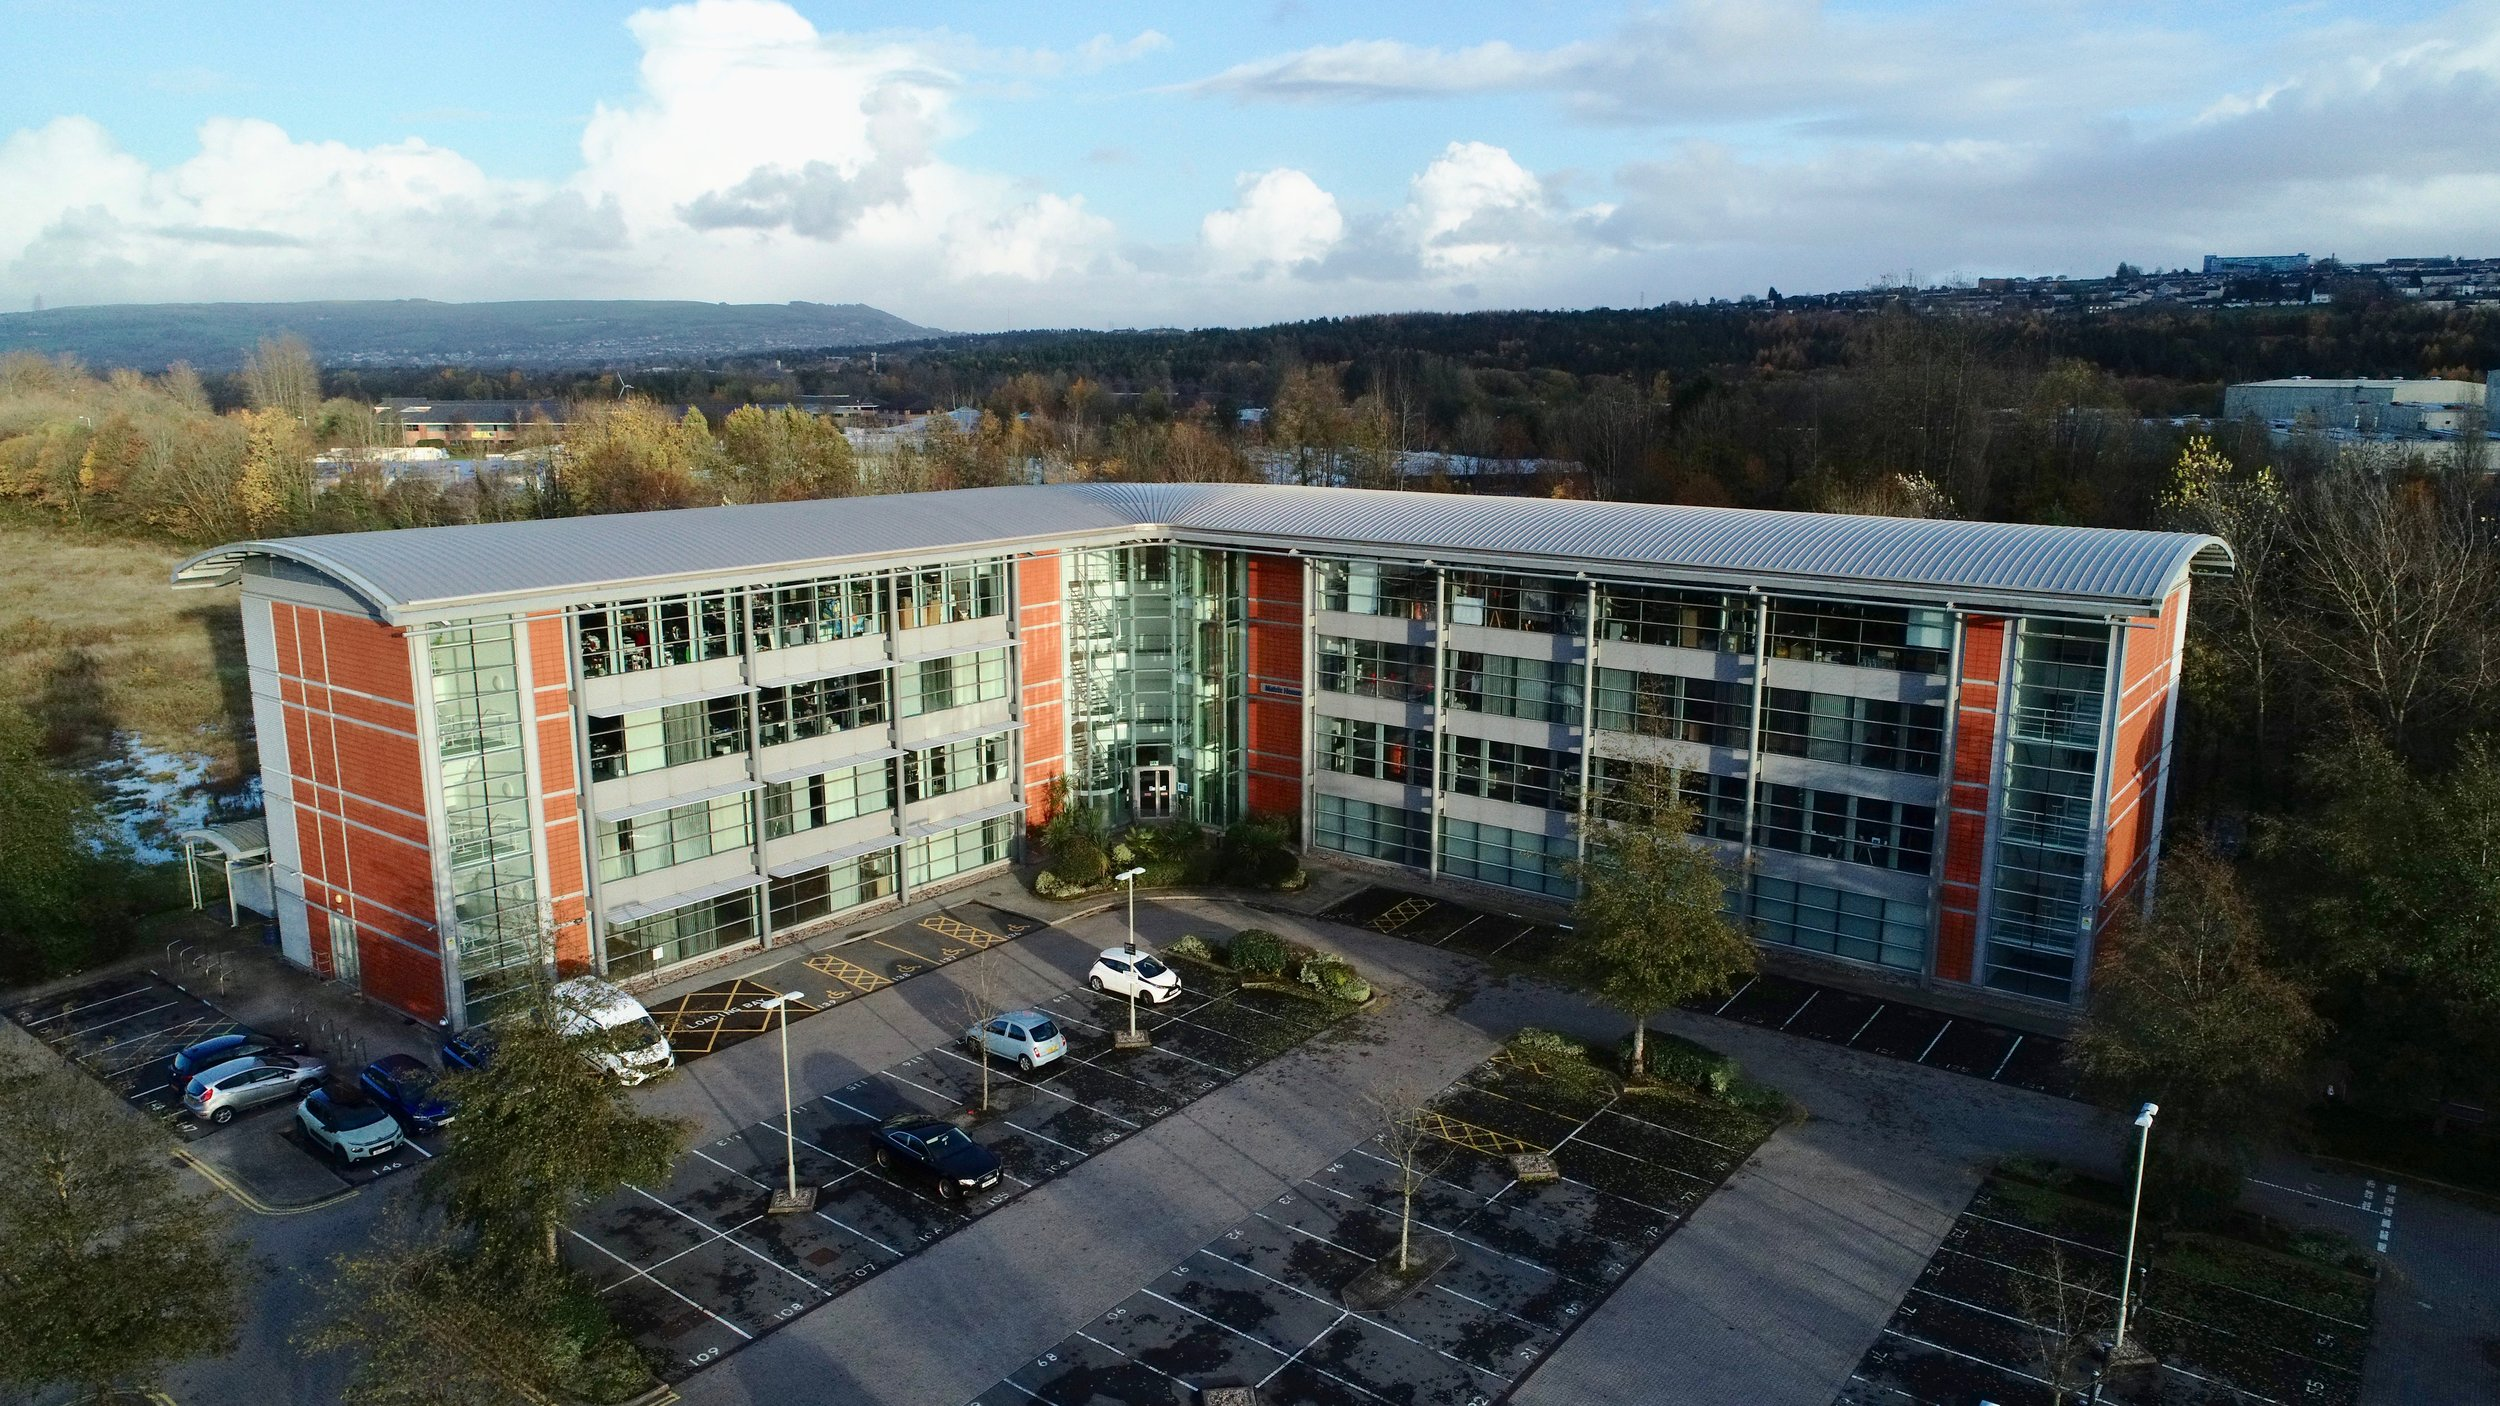 Matrix House - Take a look at one of the most modern office buildings in Swansea Enterprise Park which is now Let to the NHS.